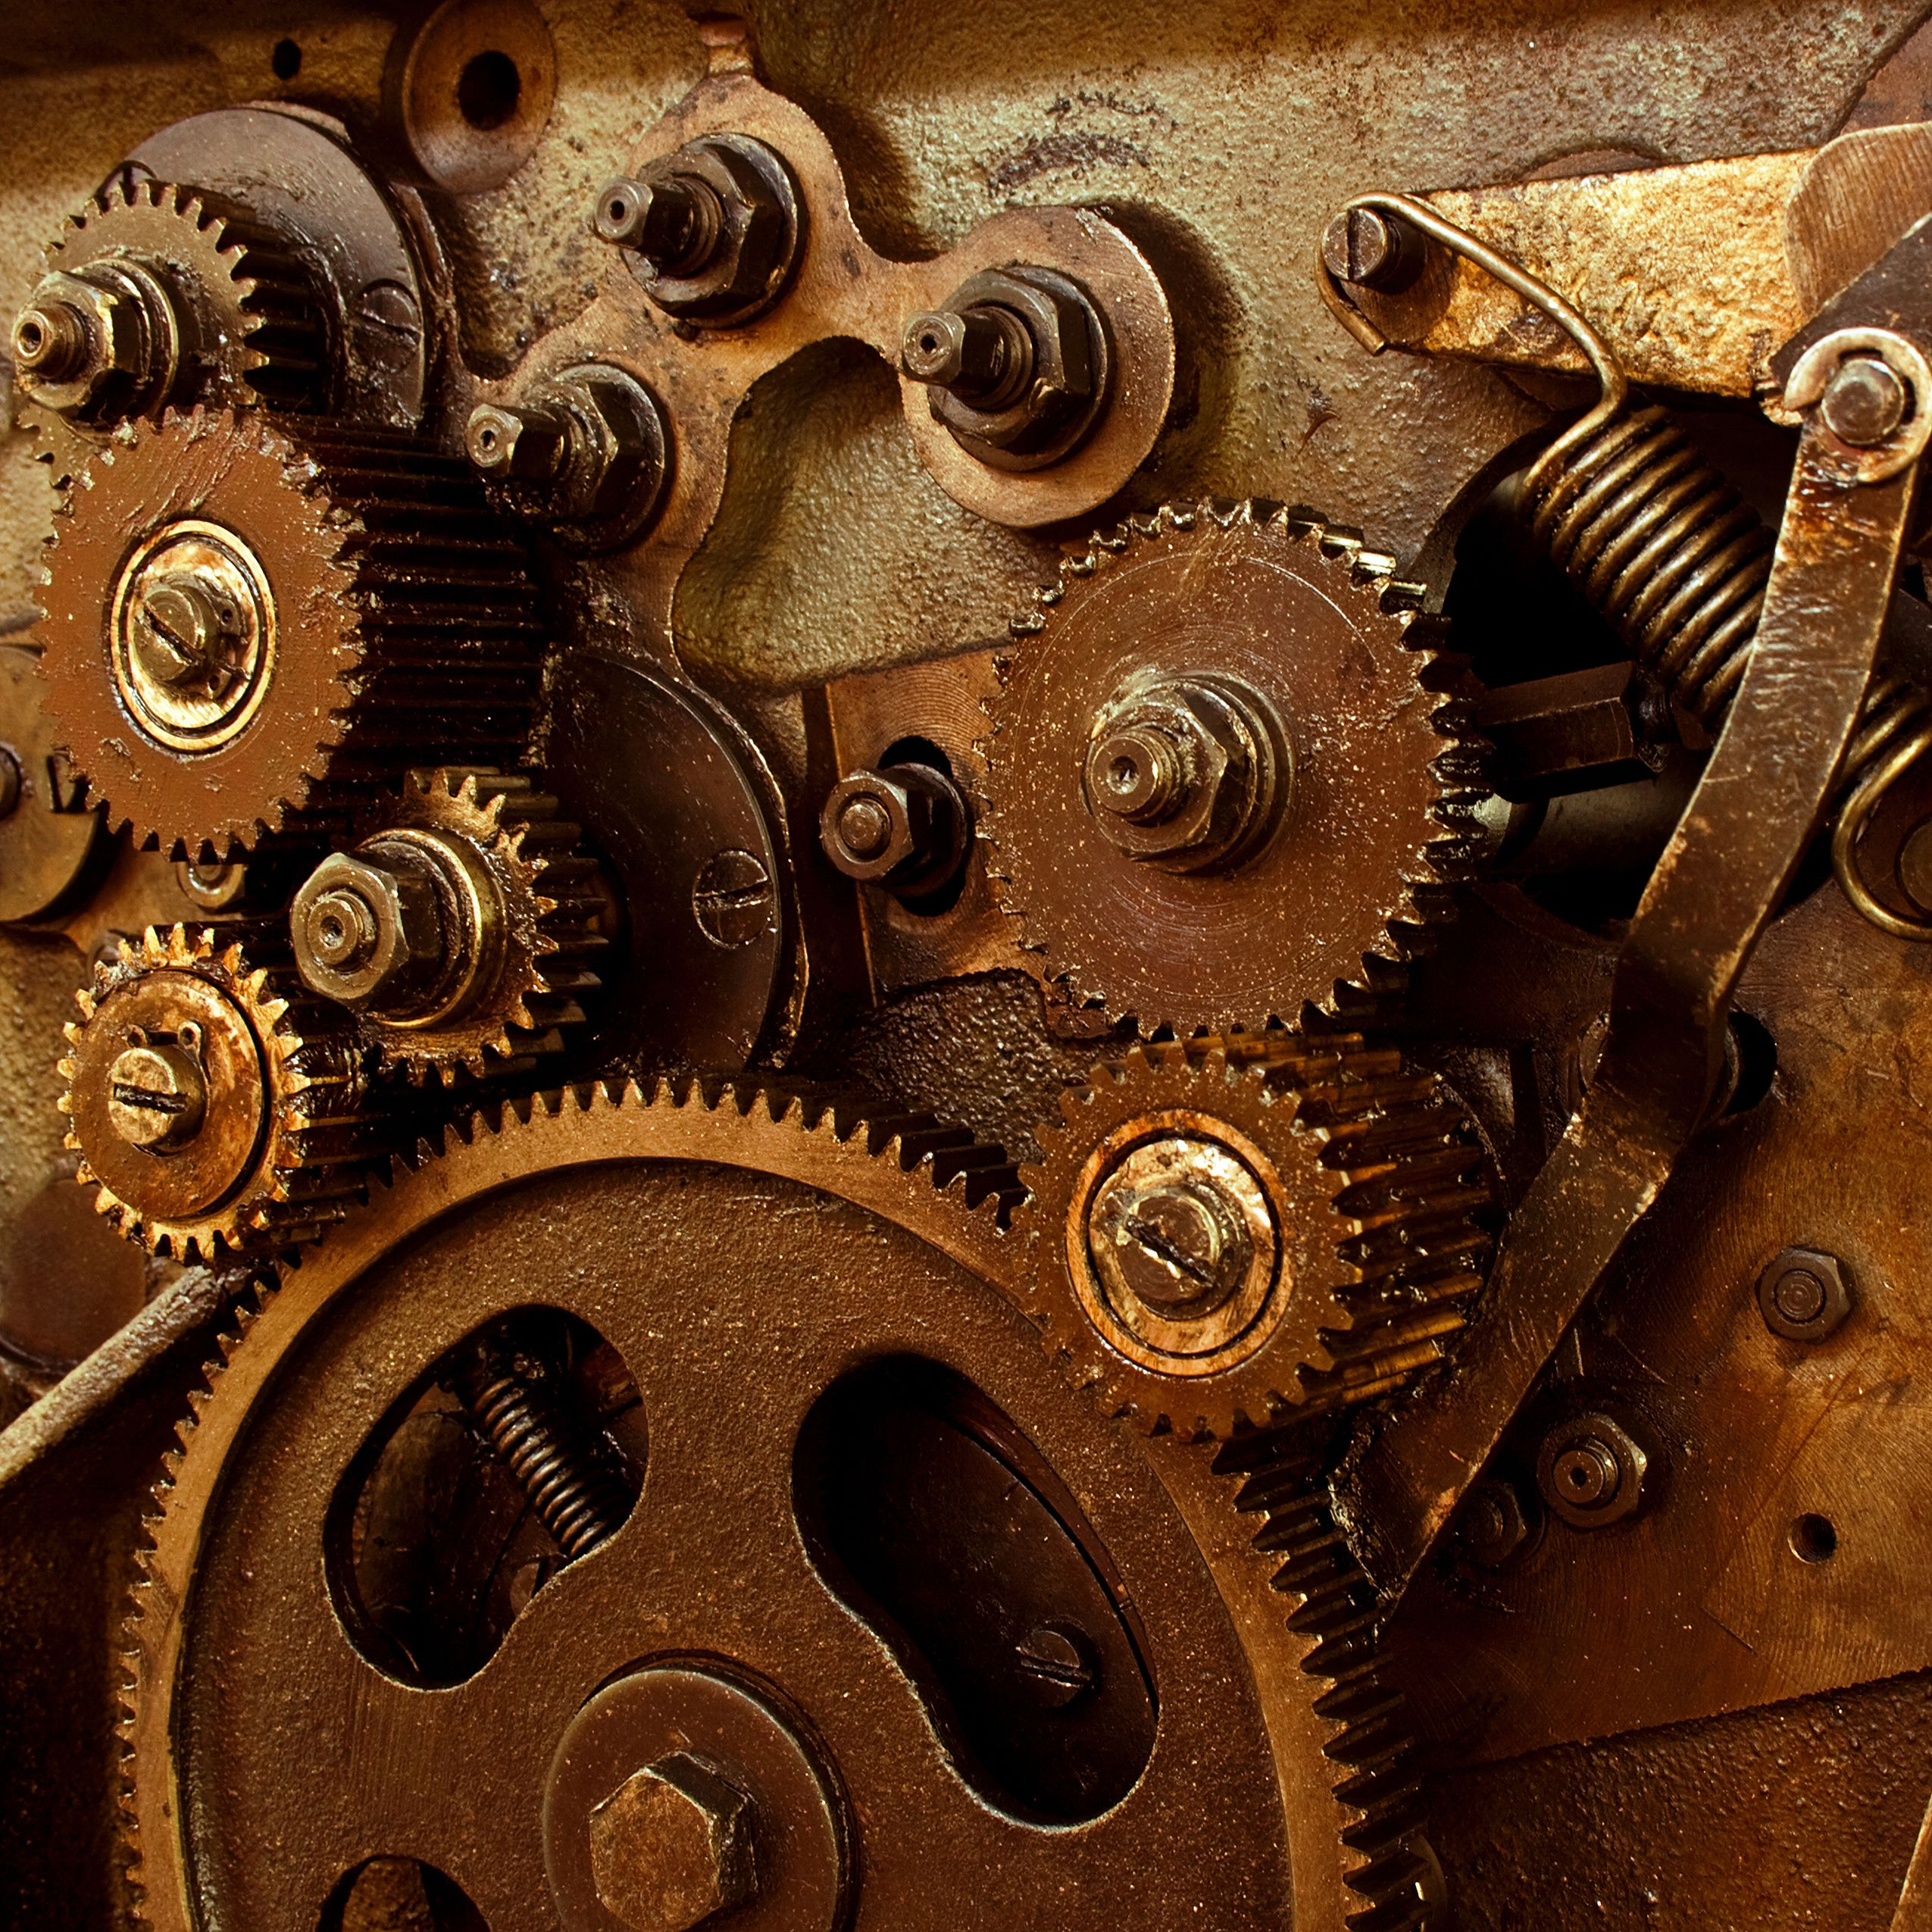 Pin By Jan Novotn 253 On Clock In 2019 Gears Texture